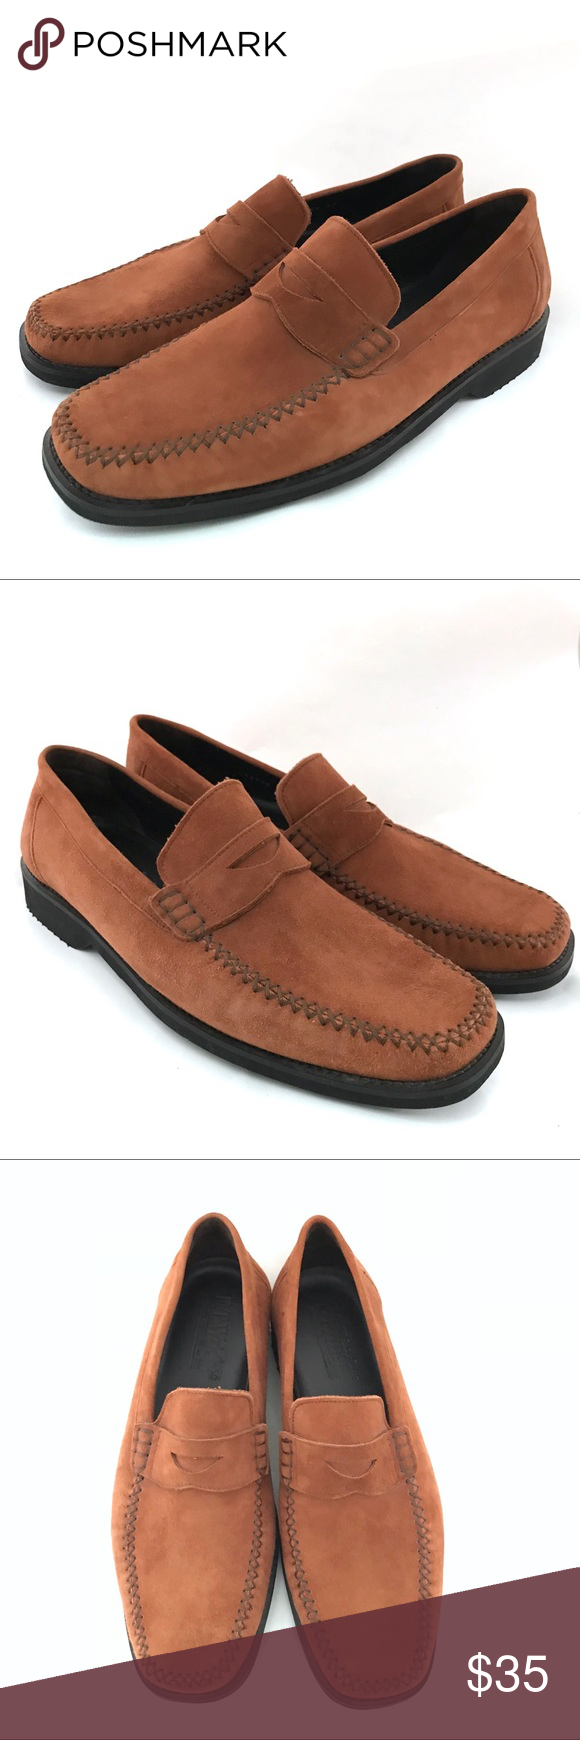 8fe08112ac1 ET Wright Men s 10 EEE Extra Wide Penny Loafers Brand  E.T. Wright Style   Penny